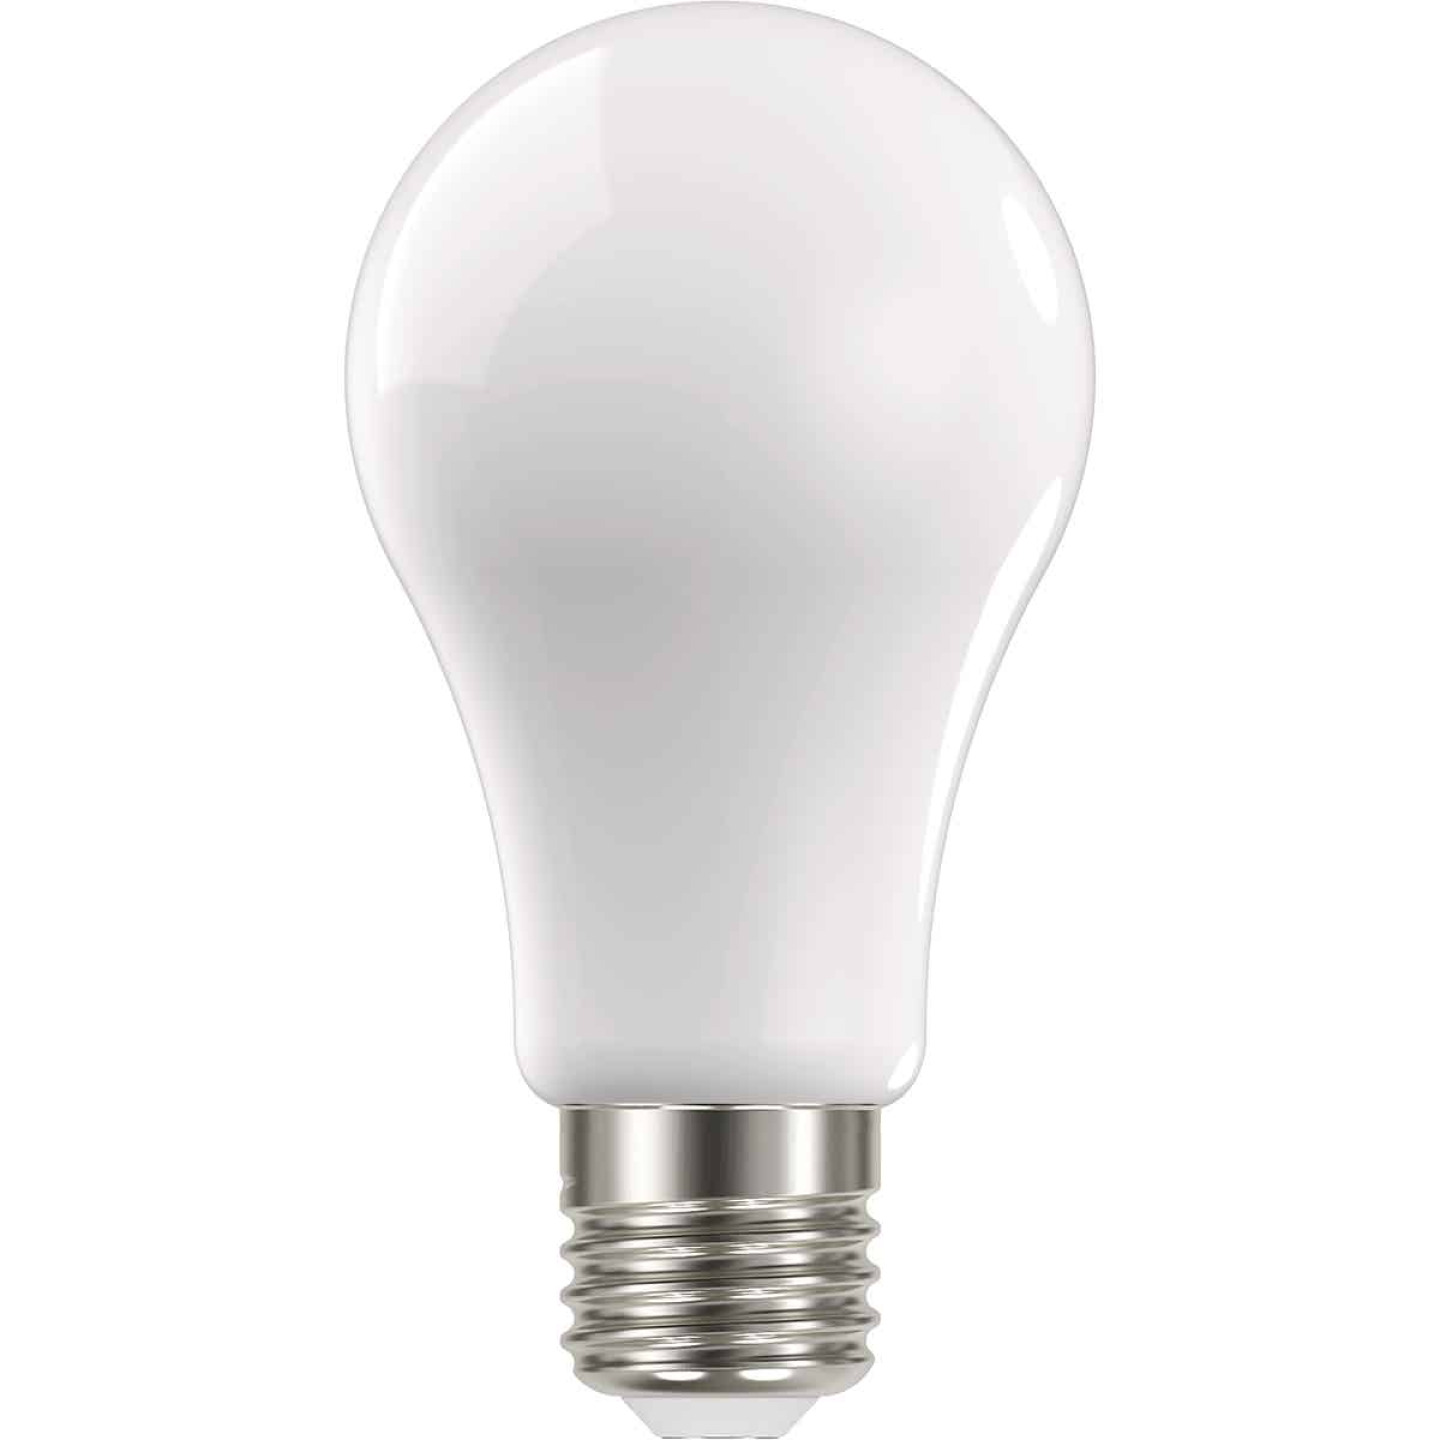 Satco Nuvo 100W Equivalent Warm White A19 Medium Frosted LED Light Bulb (4-Pack) Image 1